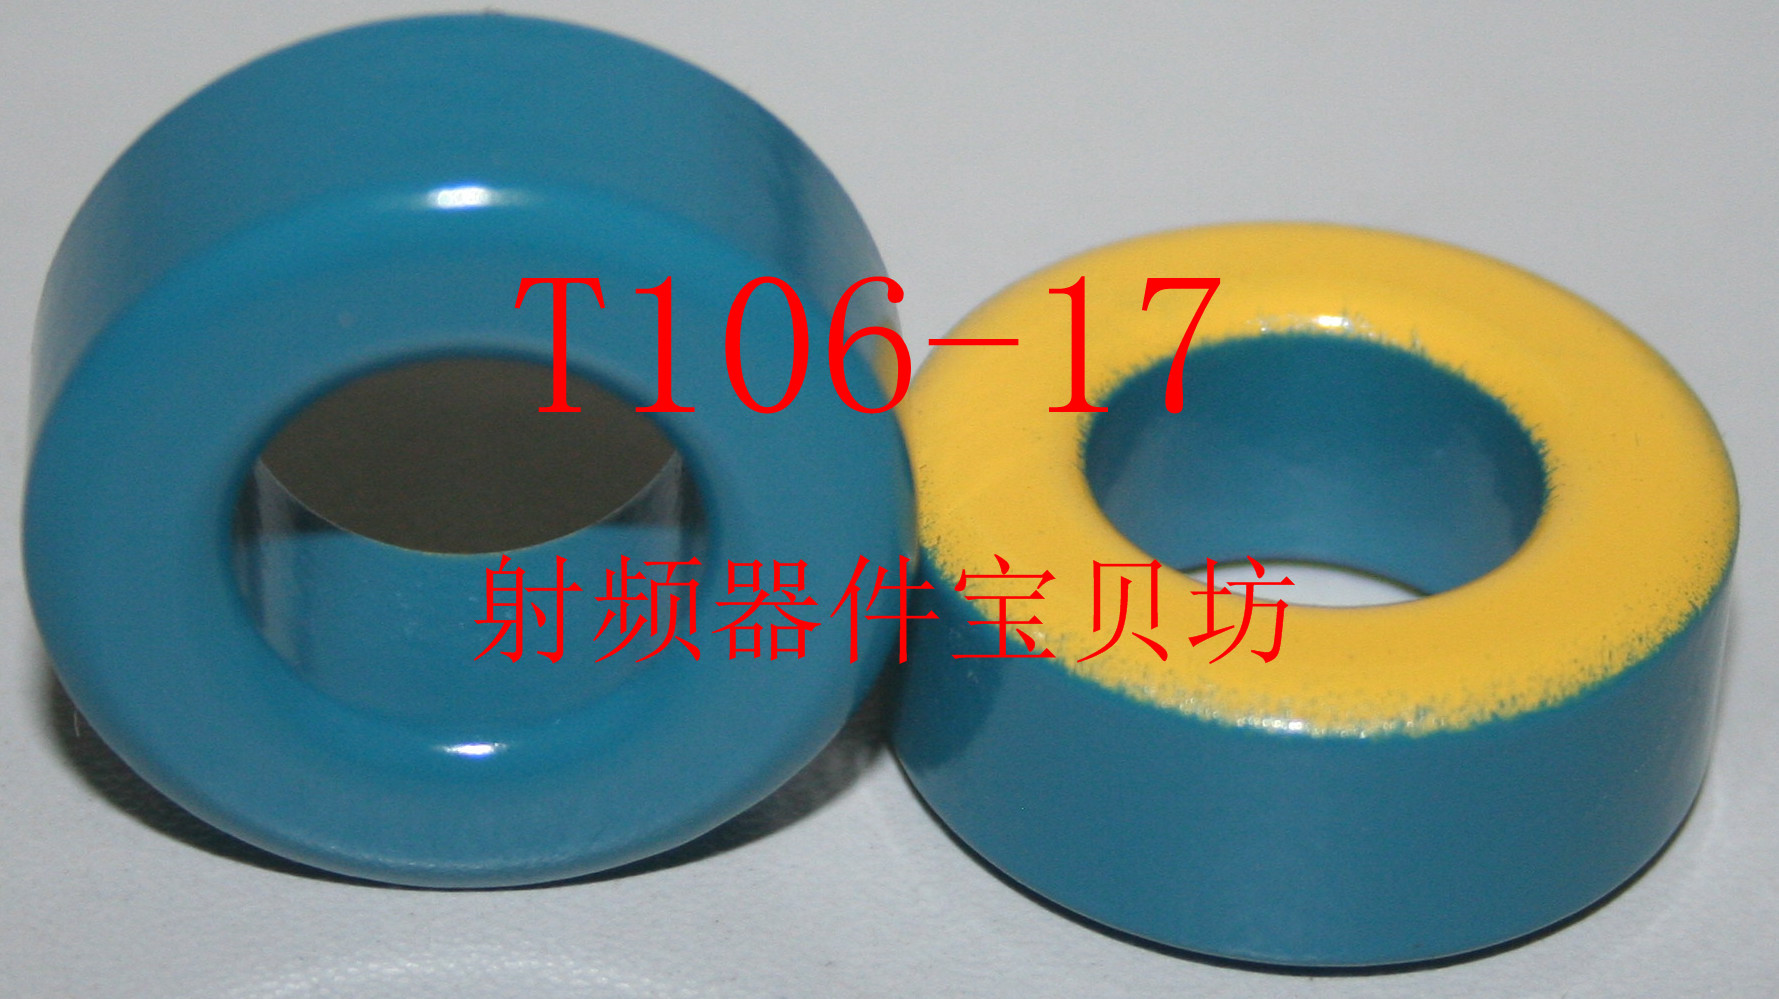 American RF Iron Powder Magnetic Core: T106-17